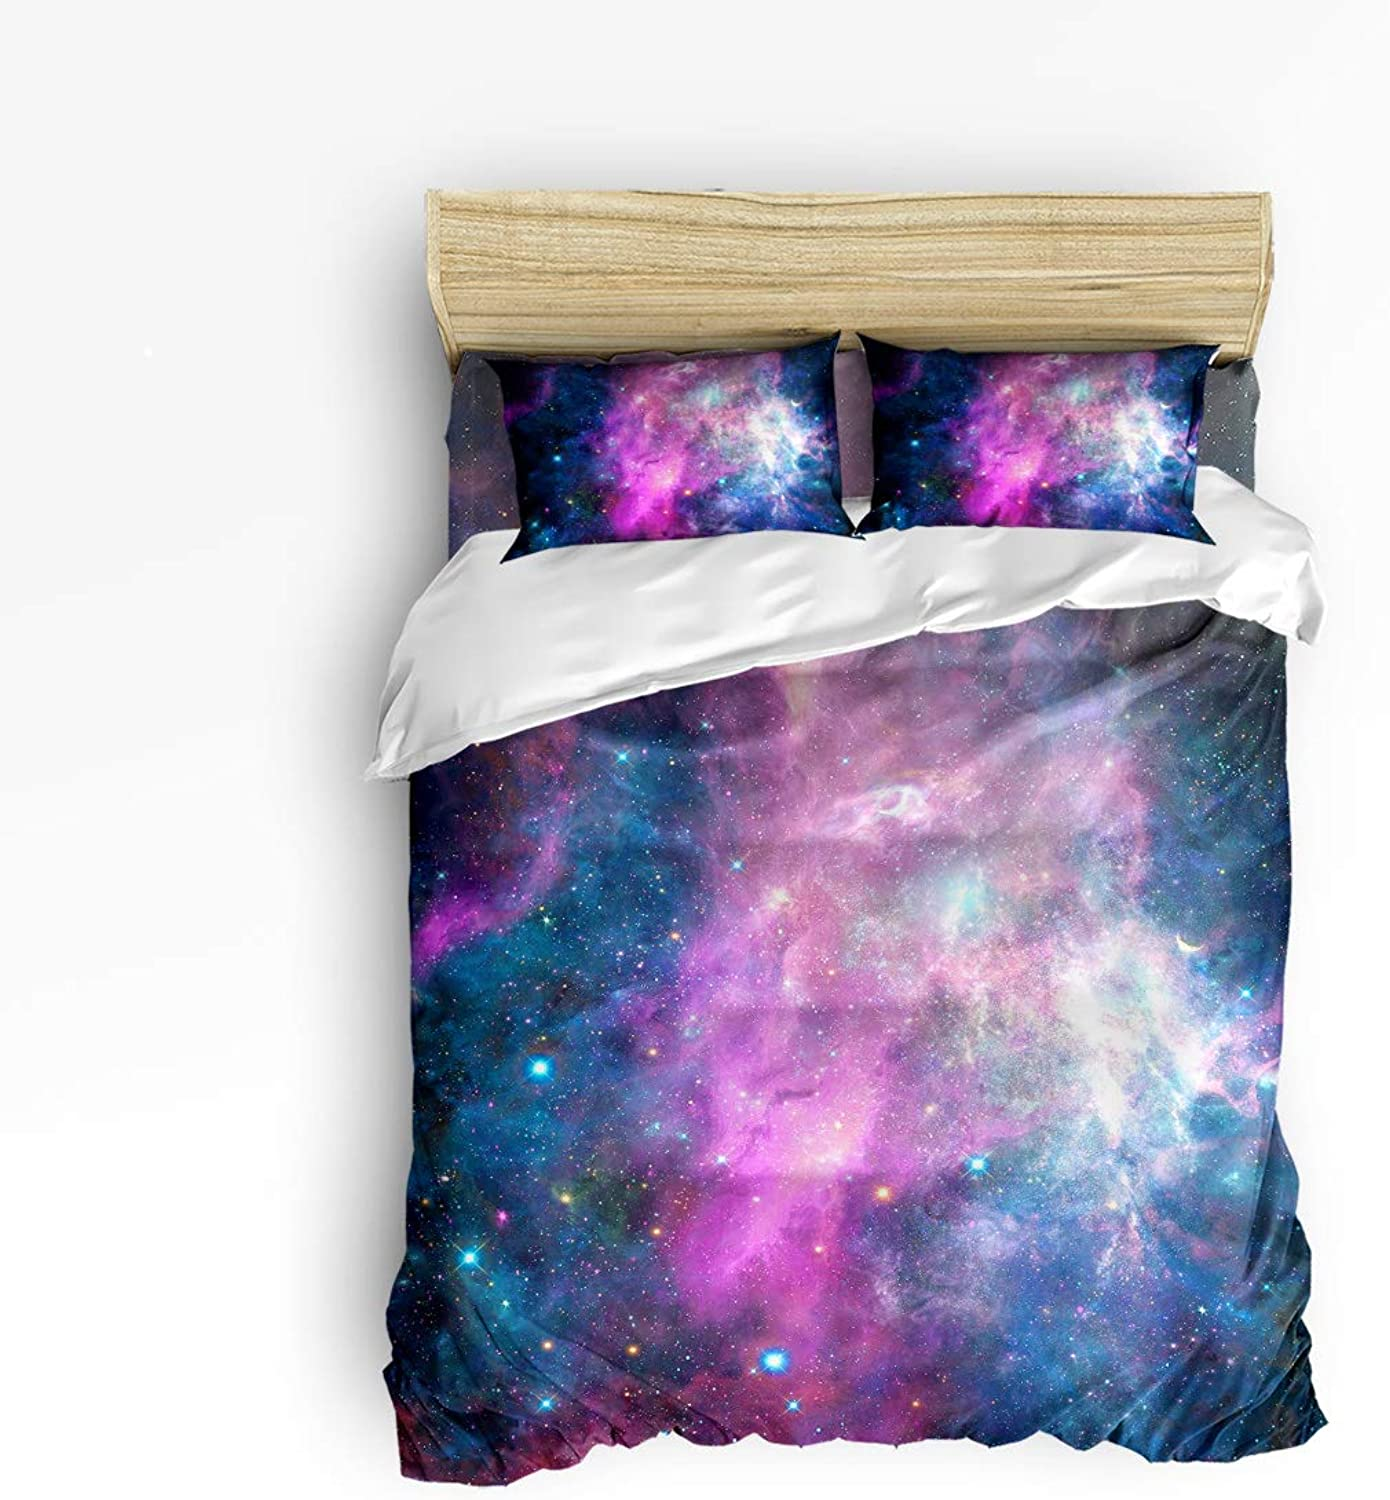 LEO BON Duvet Cover Set Full Size Galaxy Nebula Stars Space colorful Pattern Floral Duvet Cover and Pillow Shams Bed Set